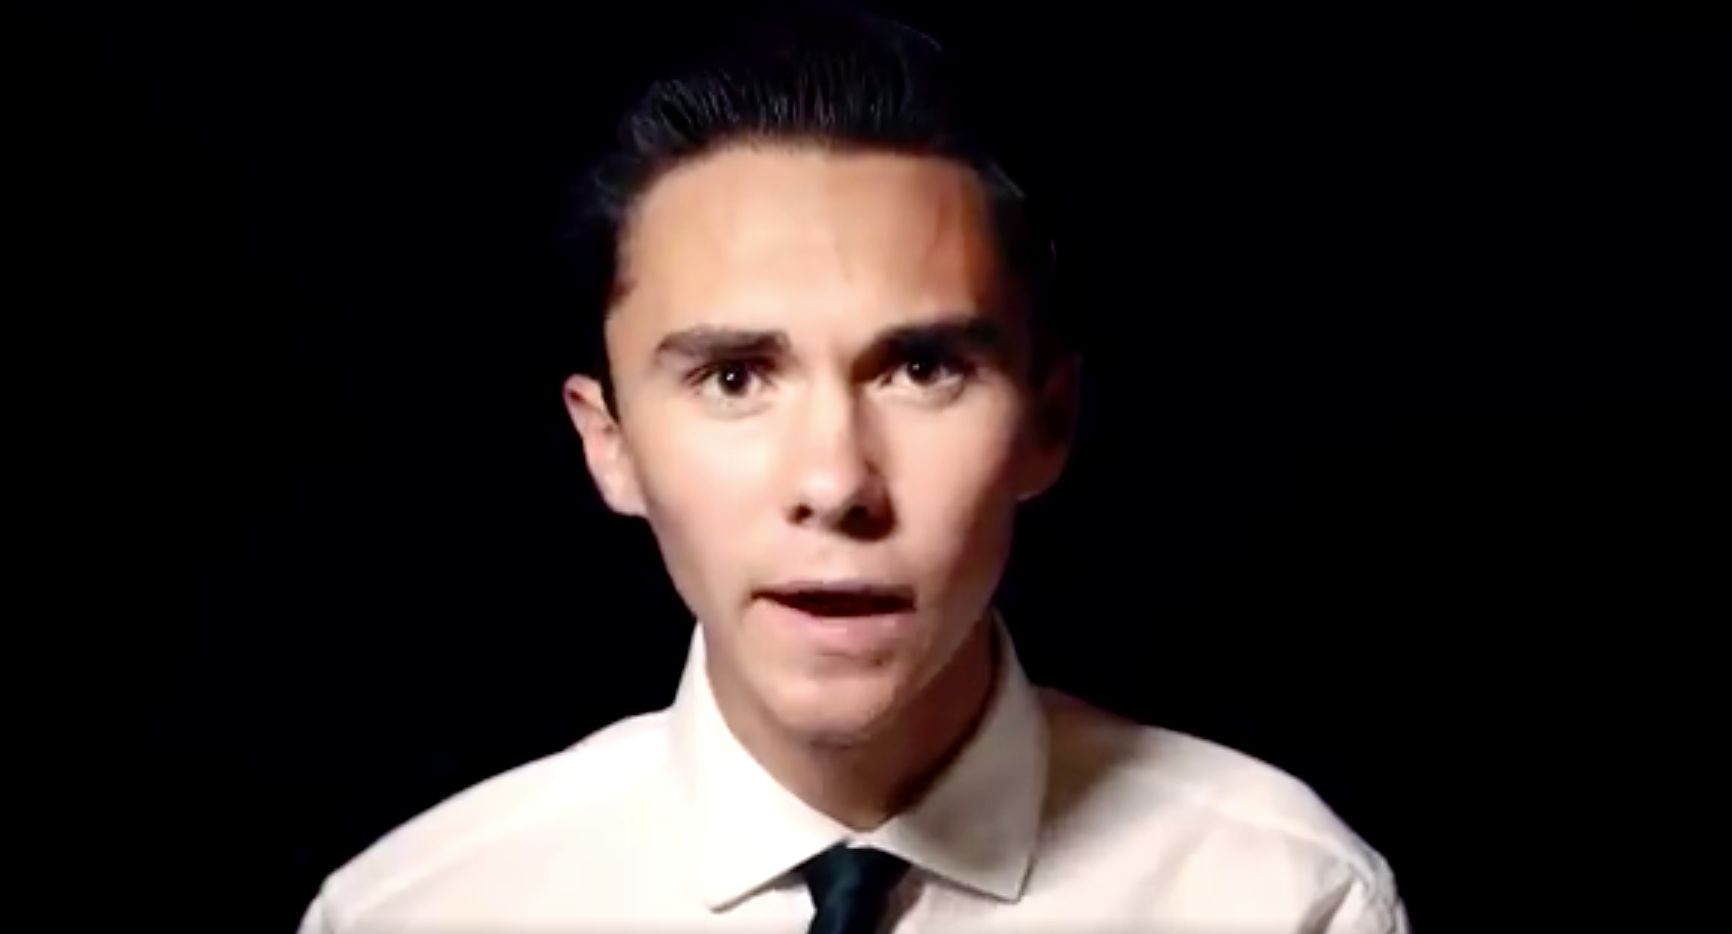 Parkland Shooting Survivor Calls Out Lawmakers In Chilling NRA-Style Ad